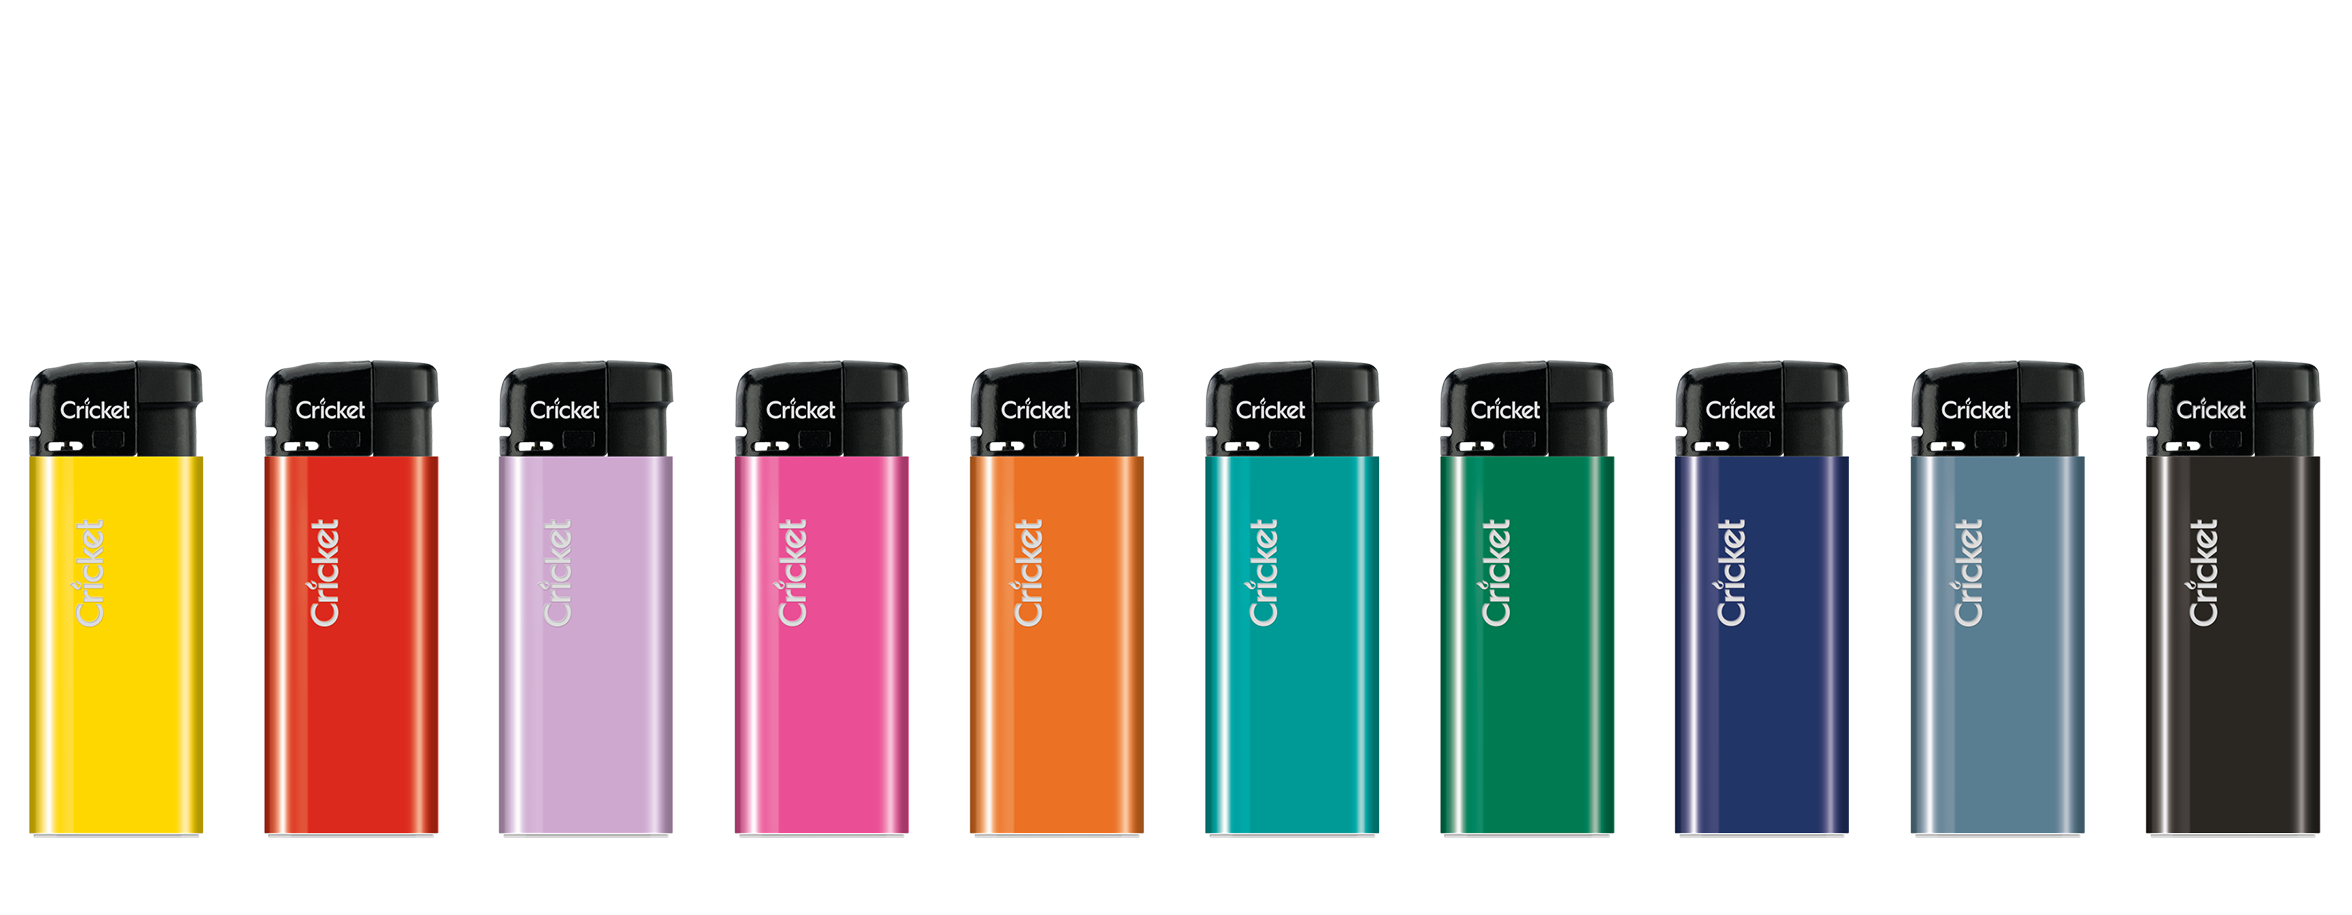 The original mini lighter in it's classic finish. Fits into every moment.